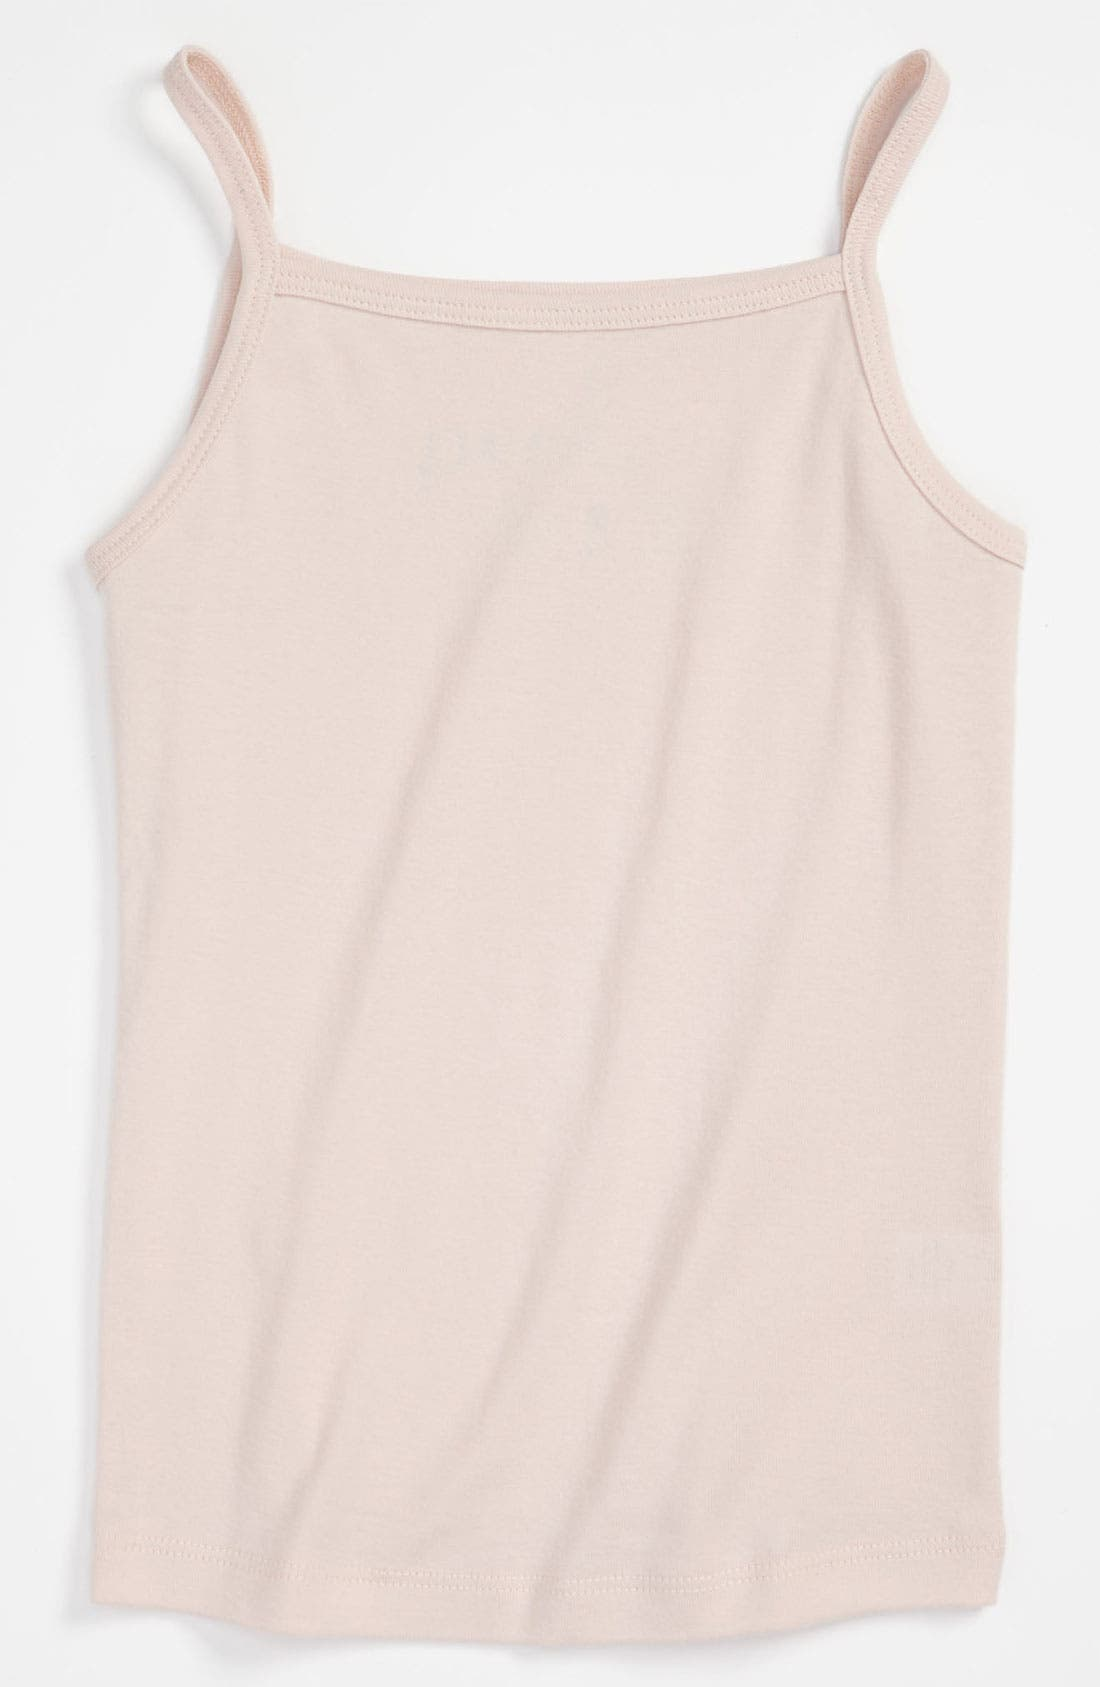 Alternate Image 1 Selected - Peek 'Taylor' Tank Top (Toddler, Little Girls & Big Girls)